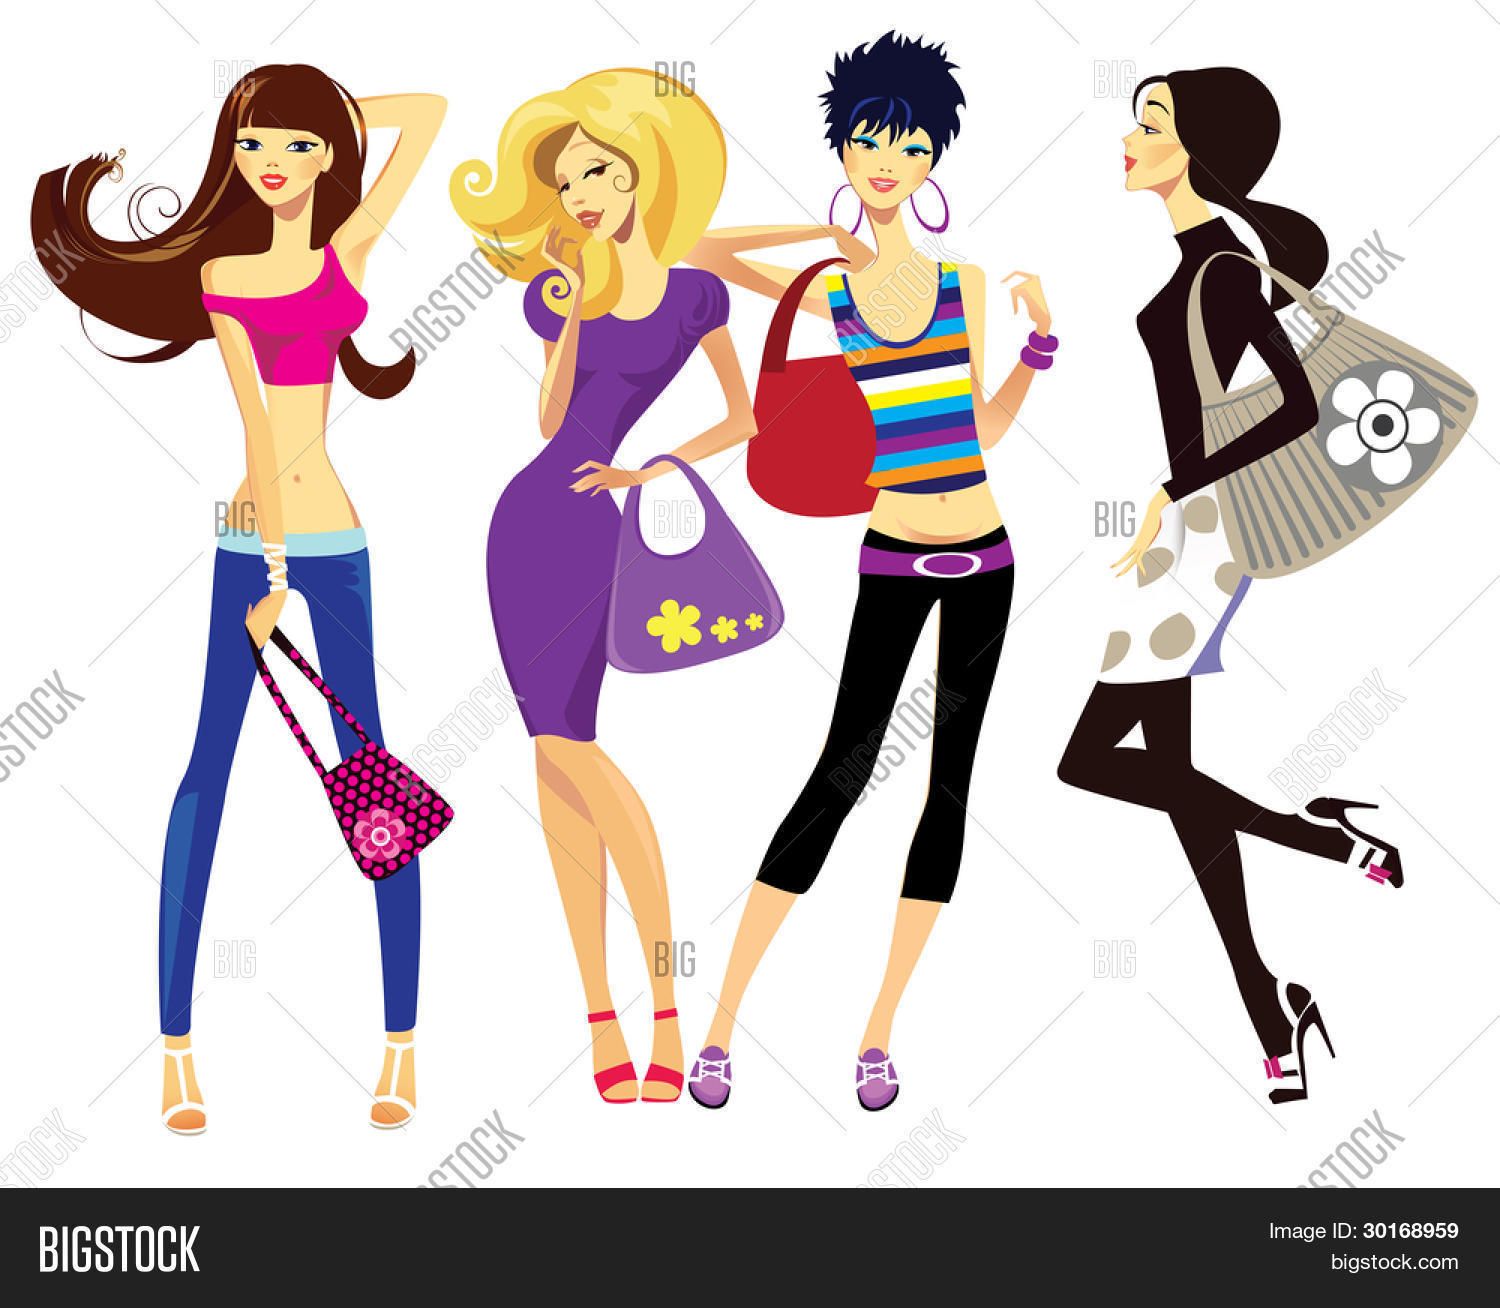 clipart women's clothing - photo #24